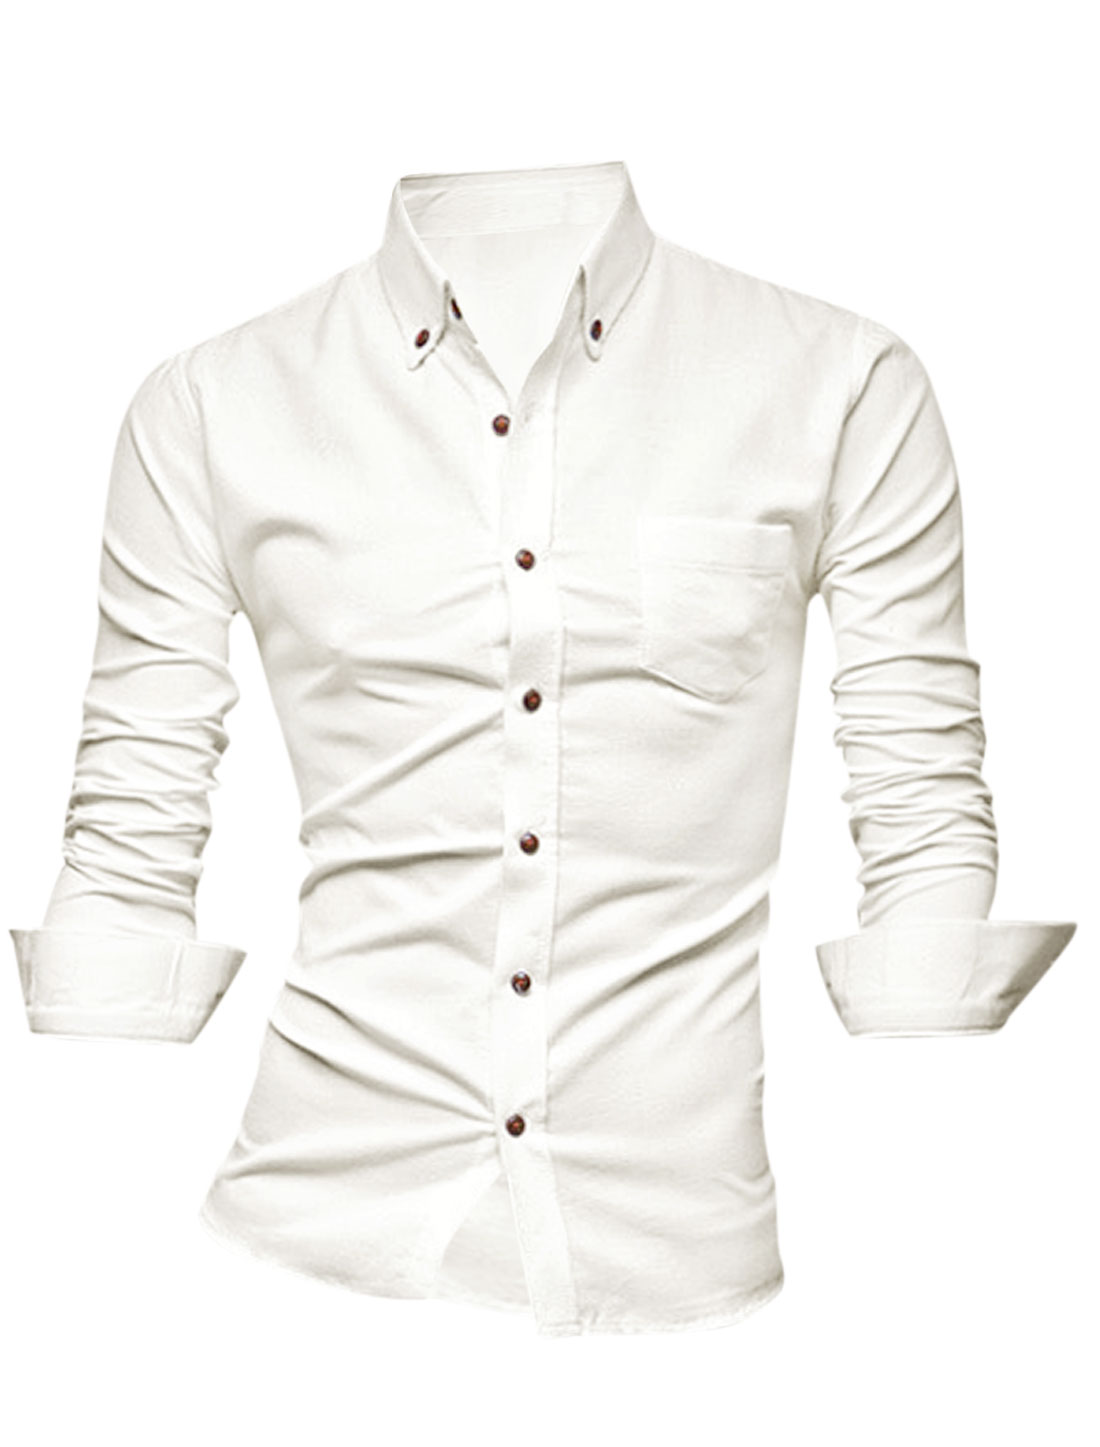 Men Point Collar Single Breasted One Chest Pocket Casual Shirt White M